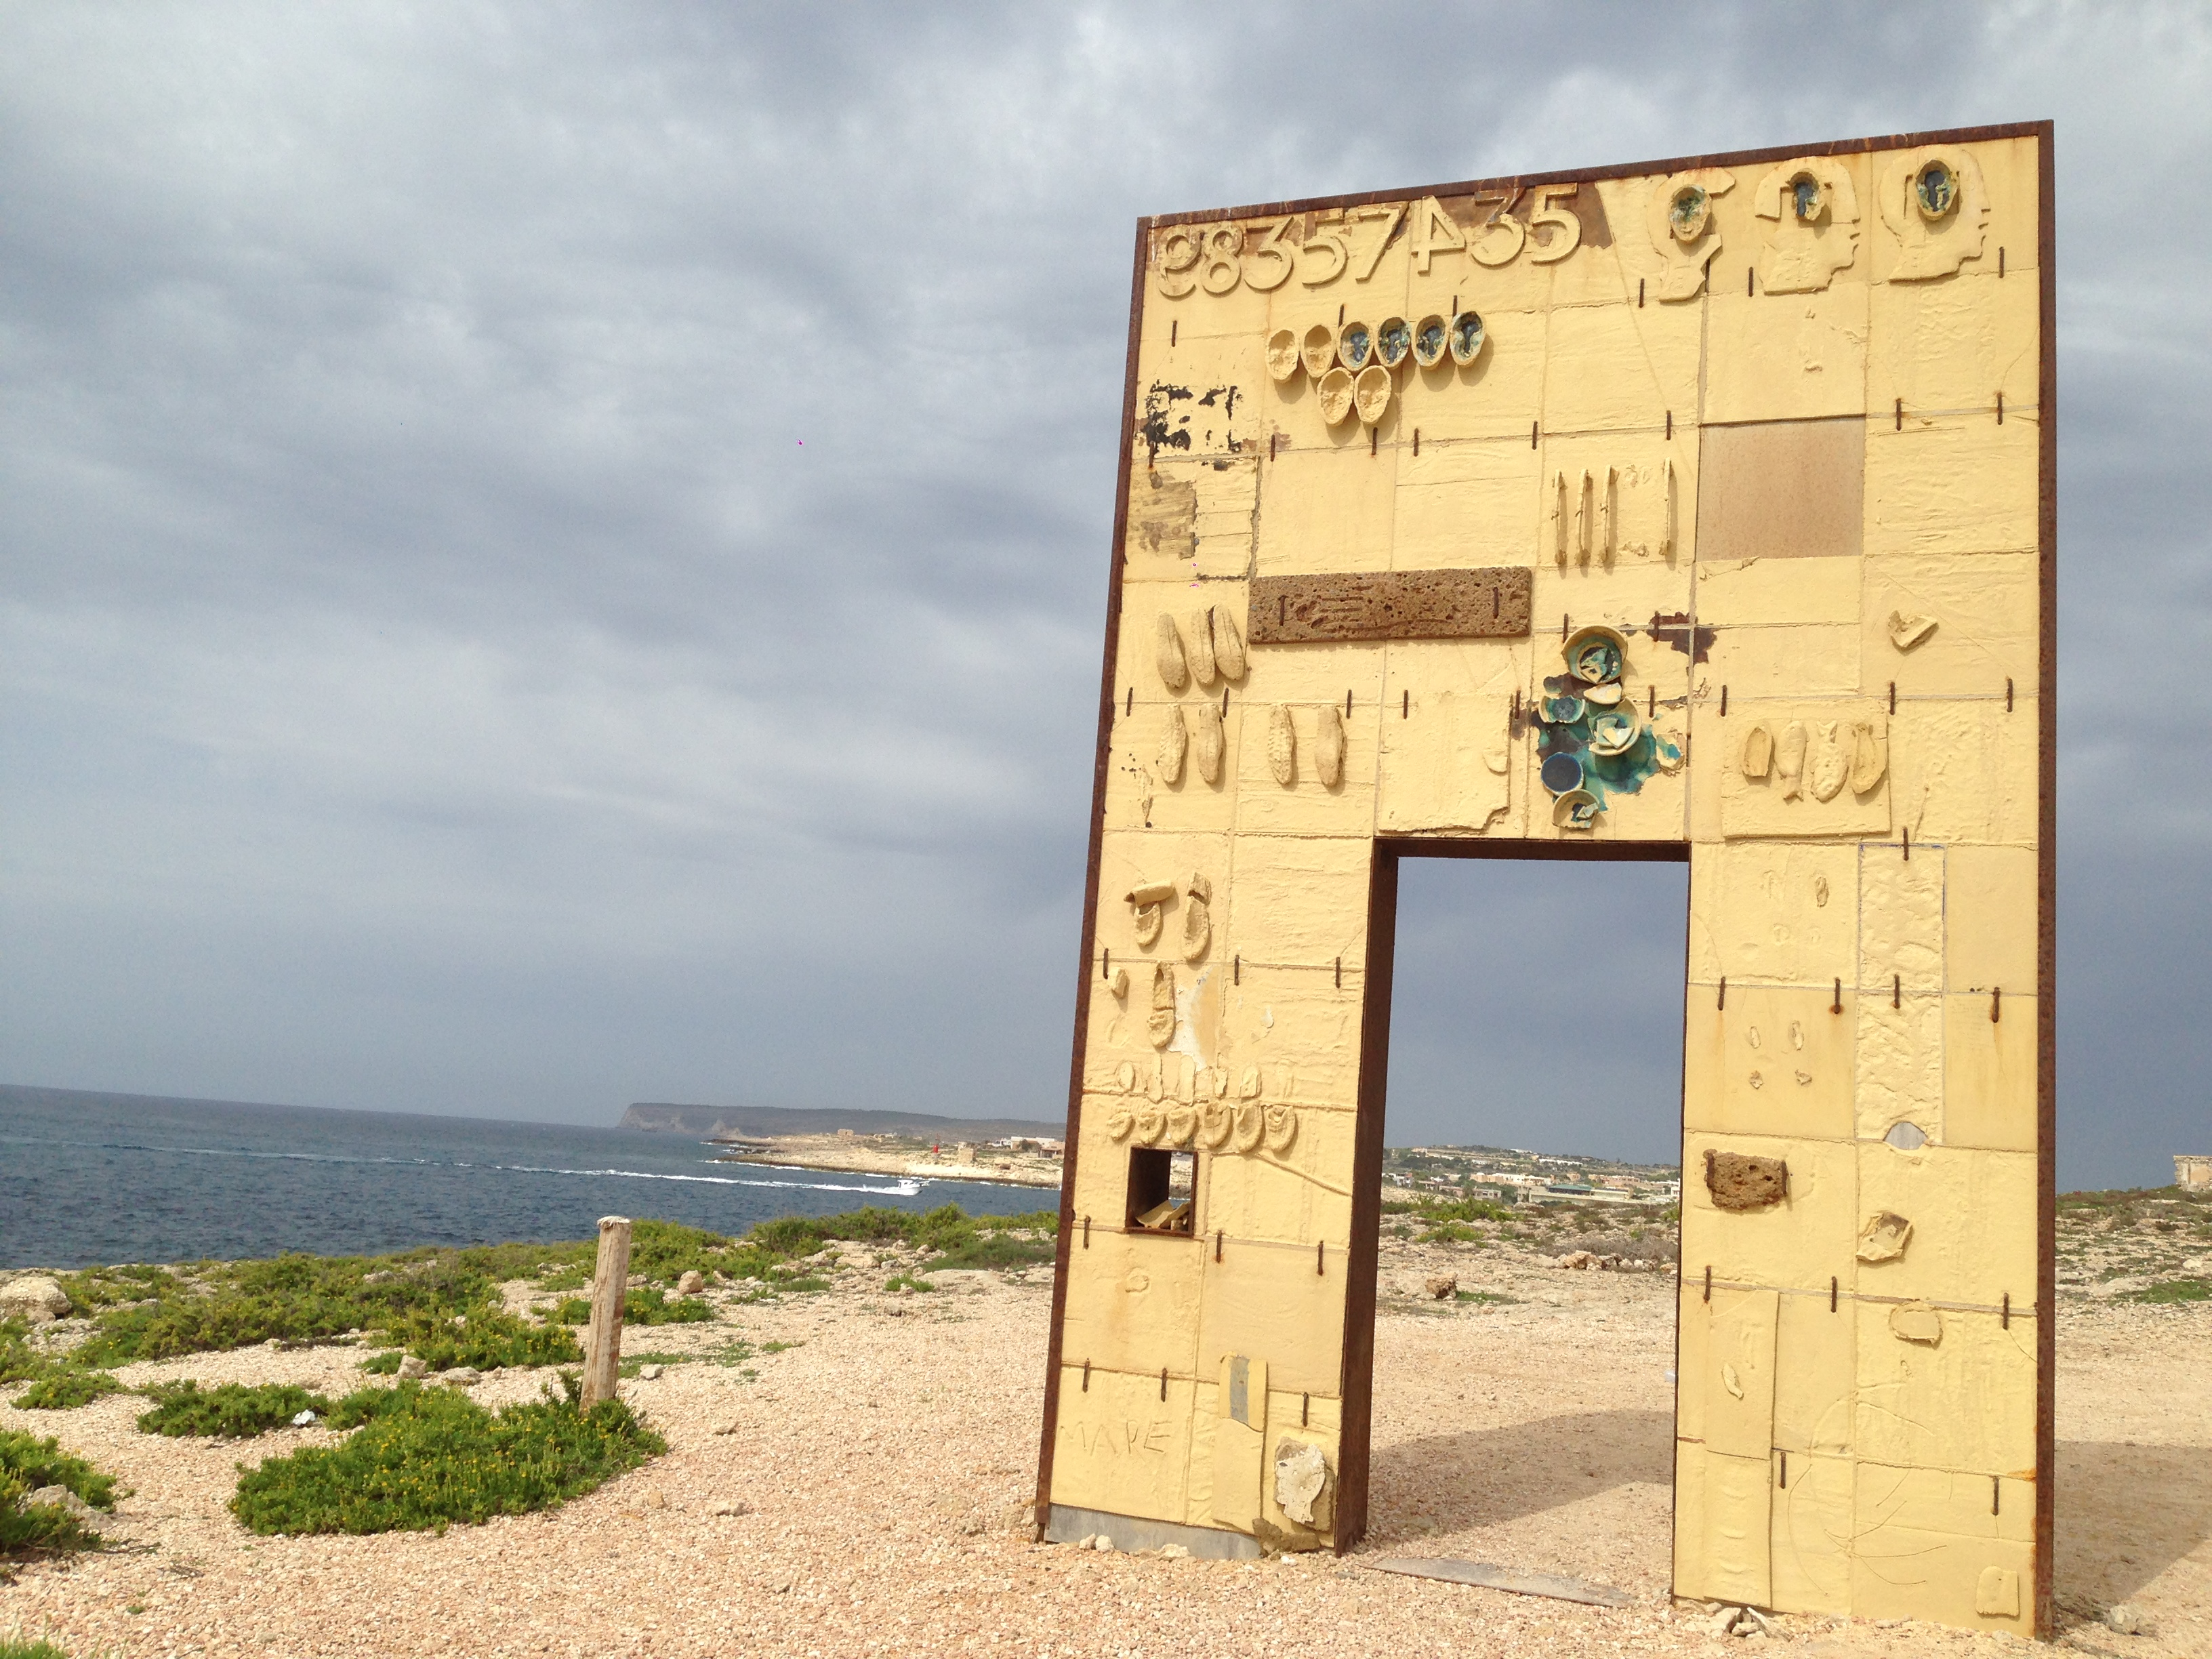 """The Door of Lampedusa, Door of Europe"" underscores the situation of refugees who arrive on Lampedusa as the entry point to the rest of Europe."